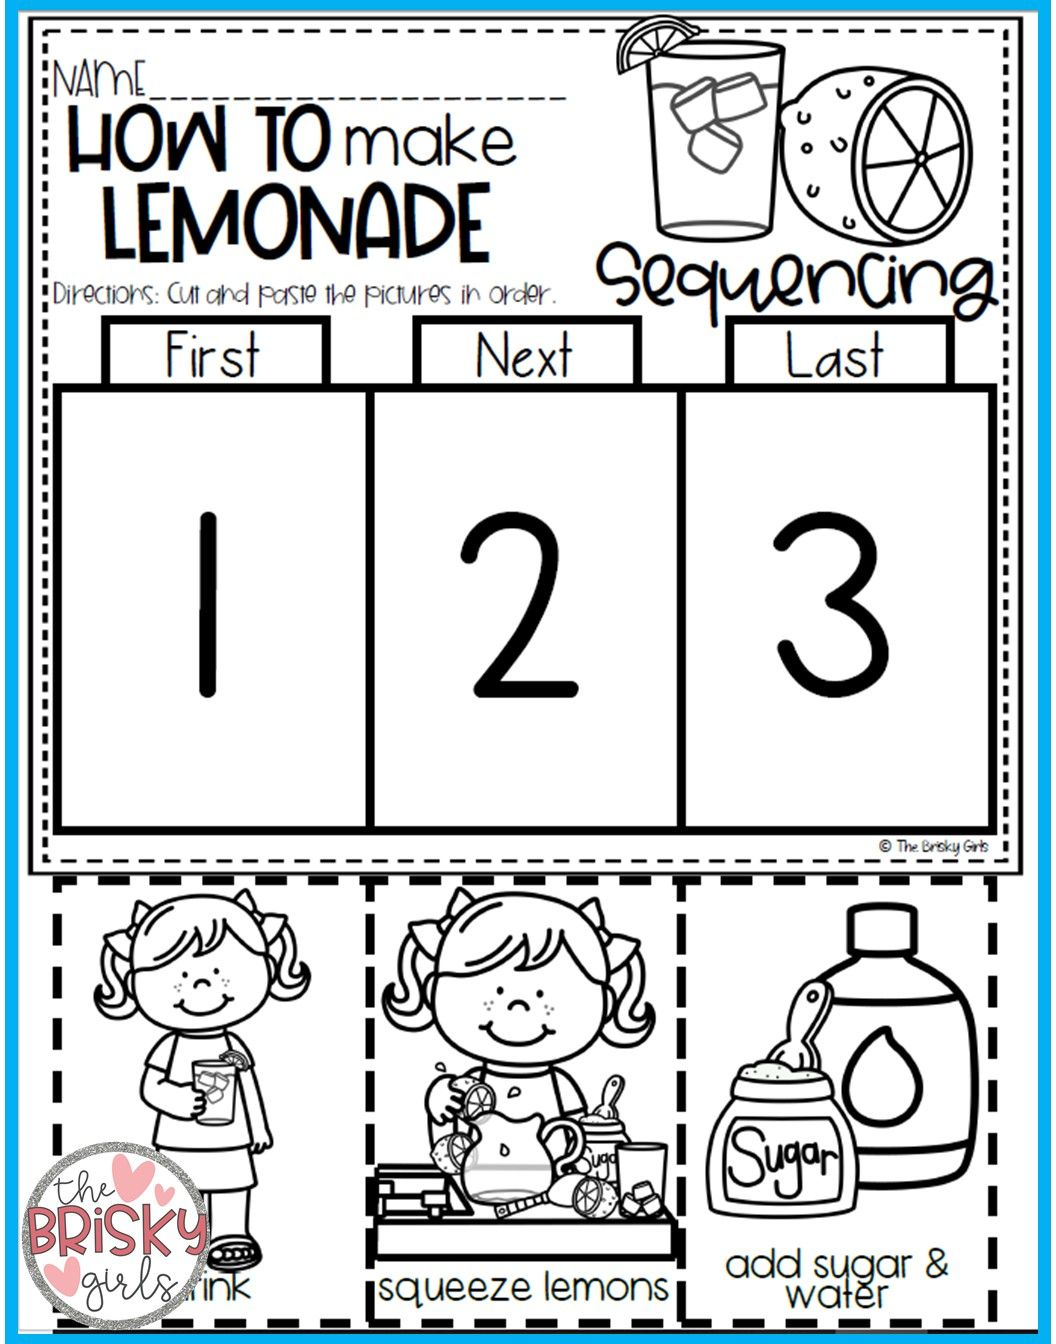 Kindergarten Summer Packet (get Ready For Kindergarten) | The Brisky